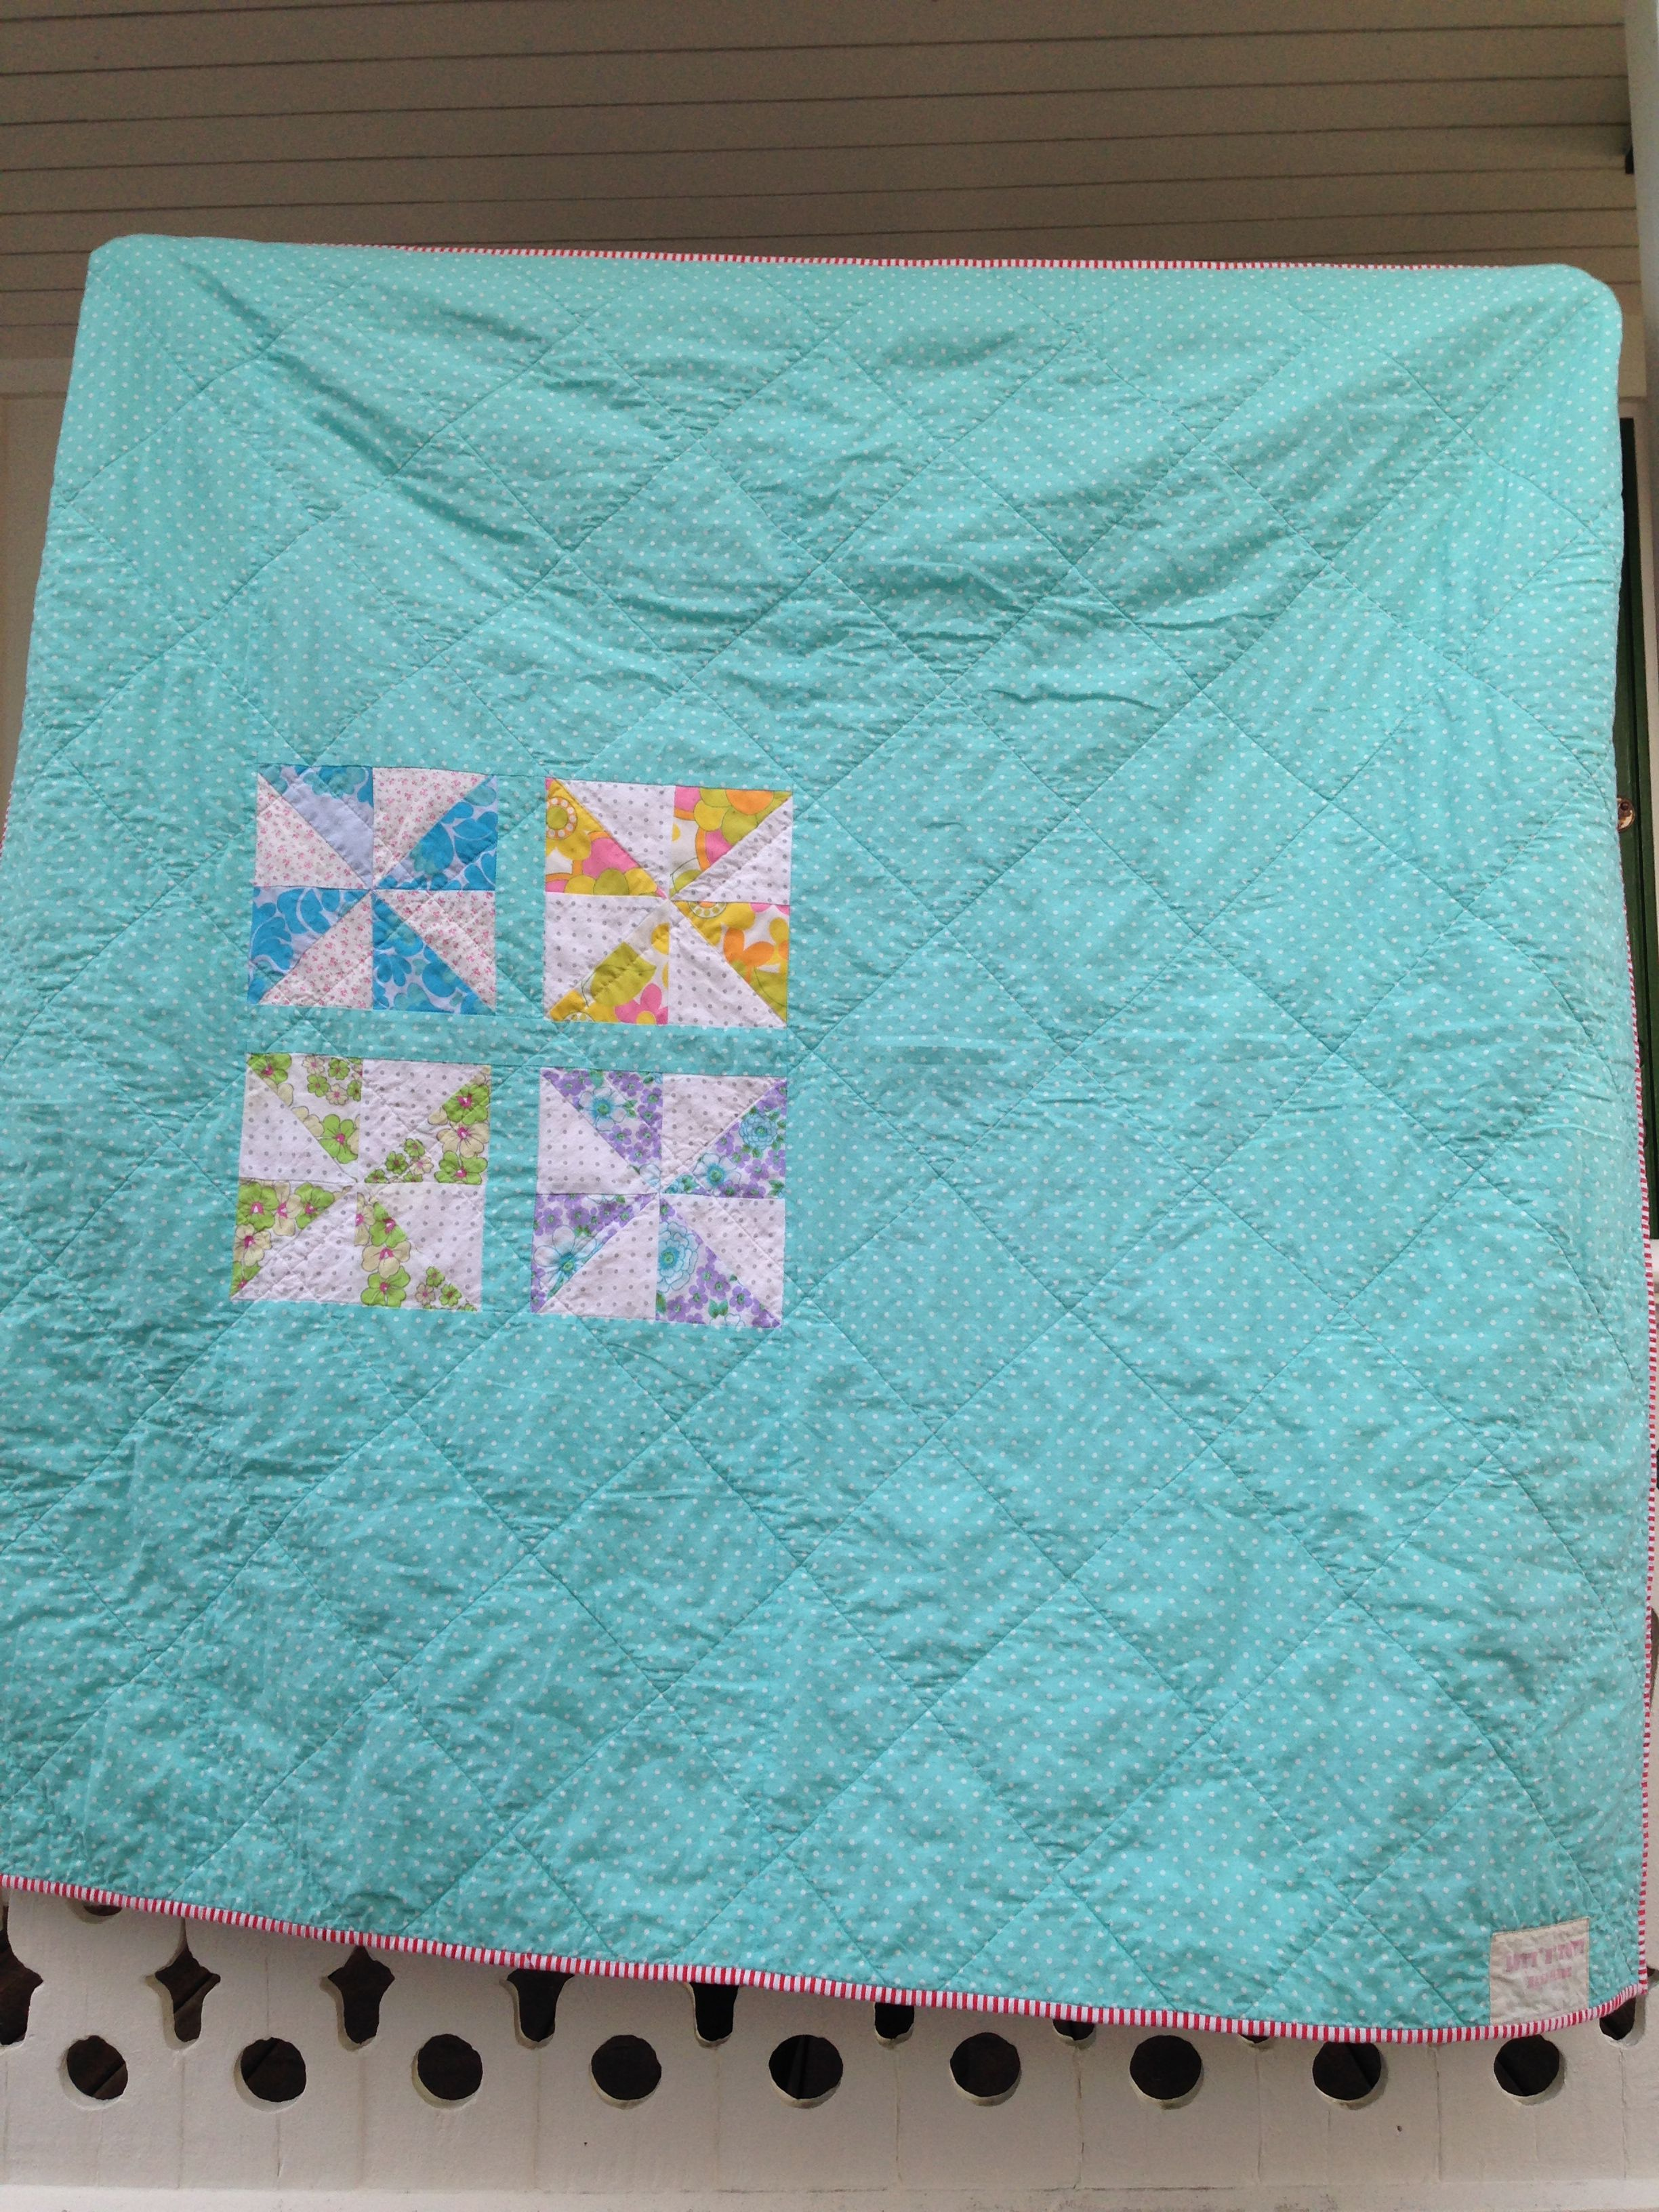 The back of my Pinwheel-quilt